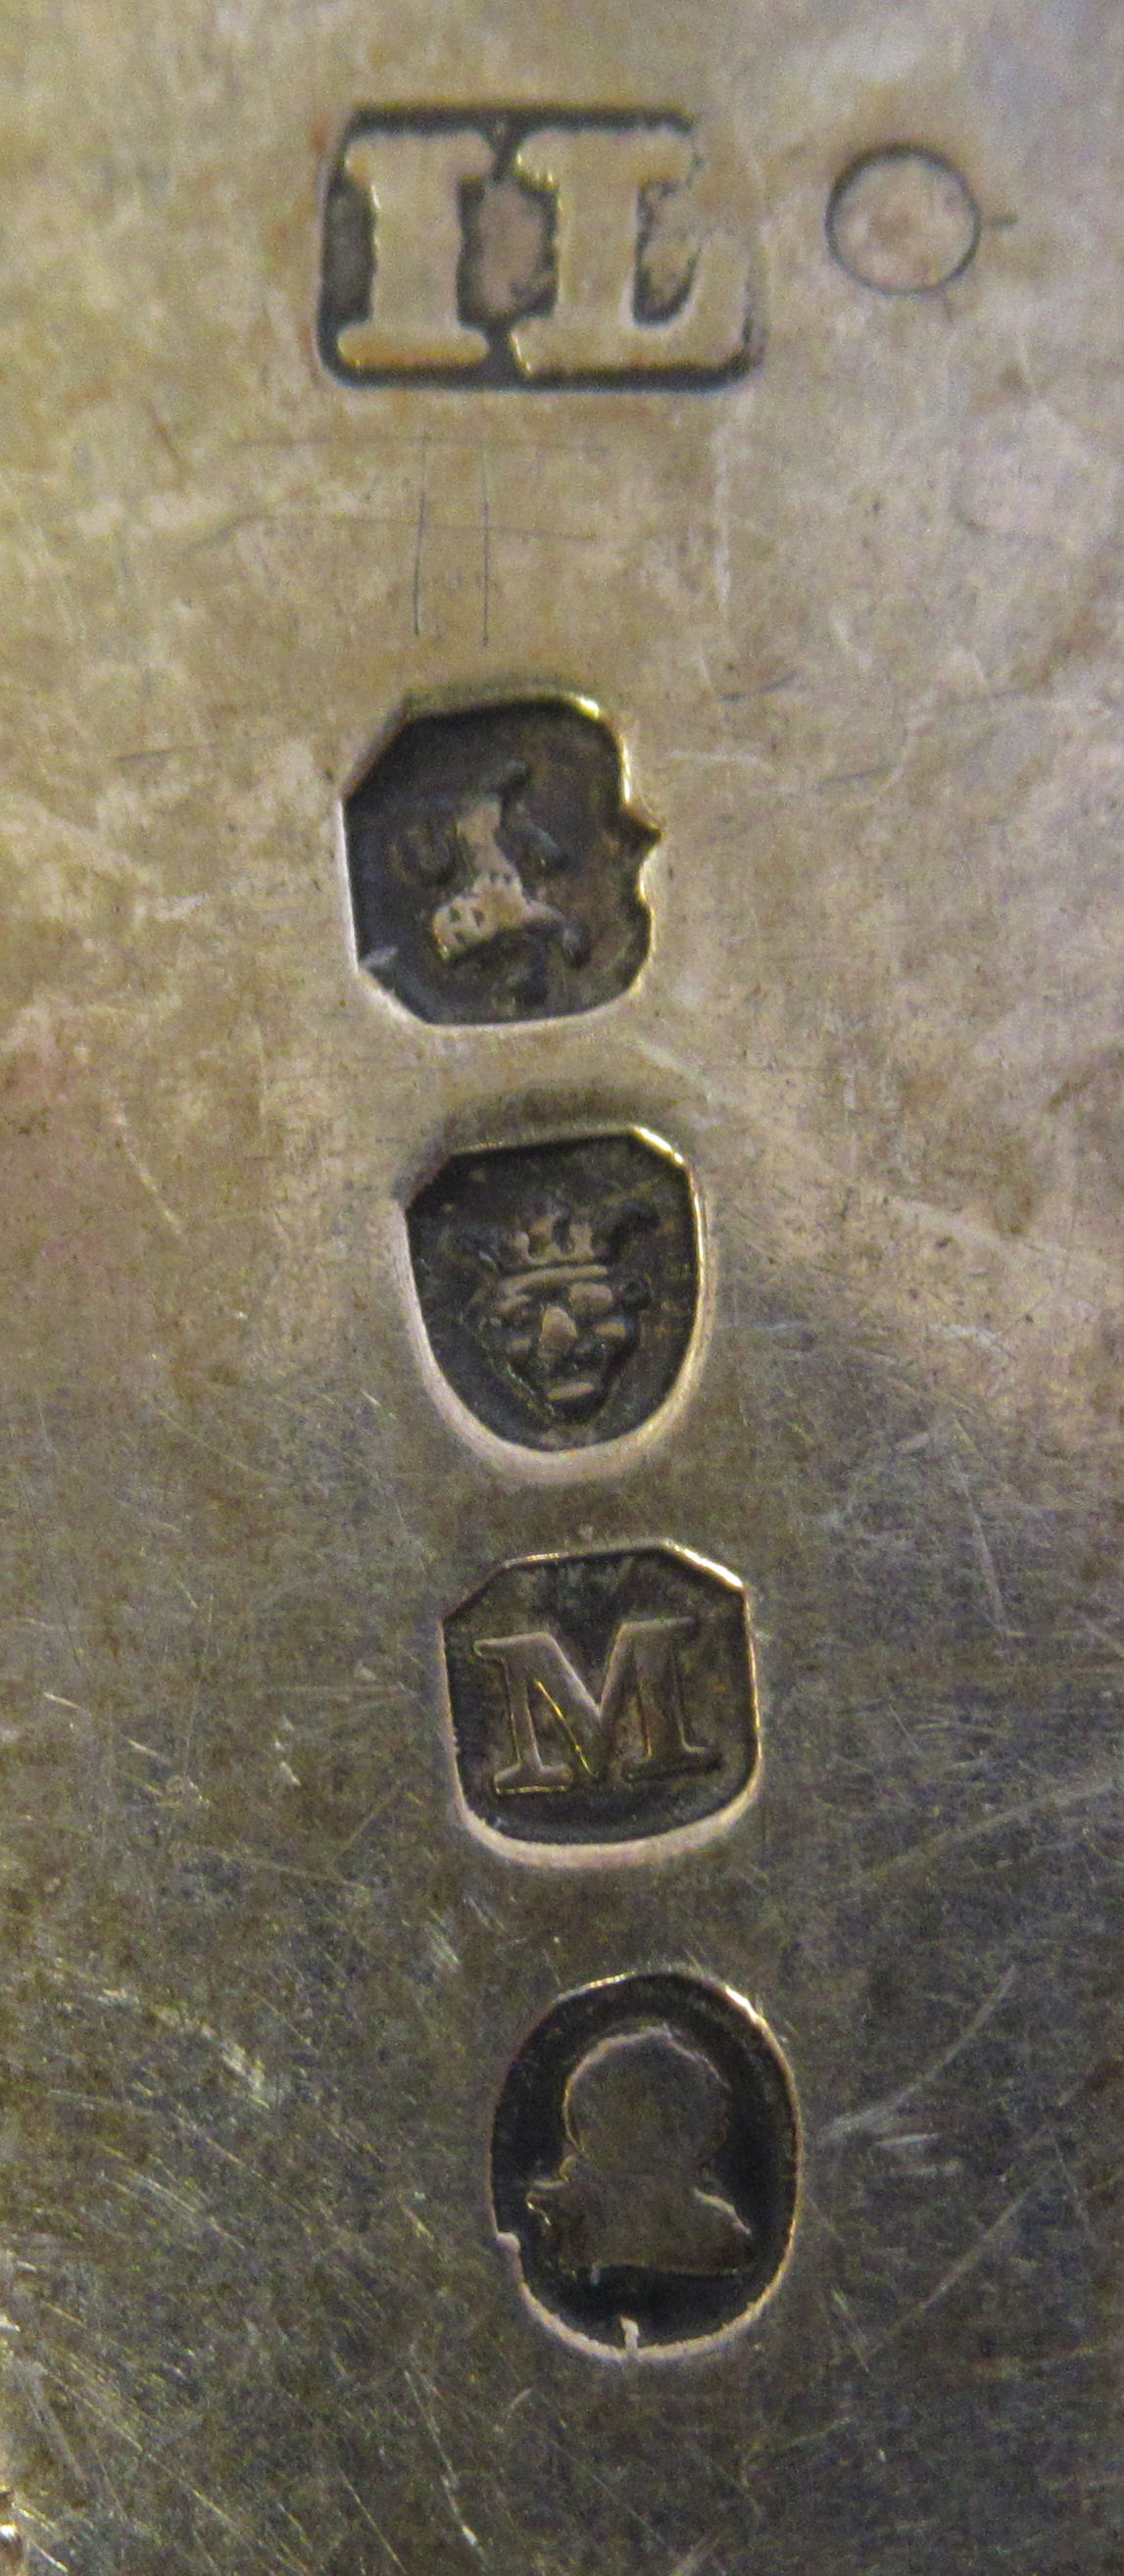 Two similar George VII silver Old English pattern sauce ladles with oval bowlsIL & JMLondon 1807 - Image 3 of 3